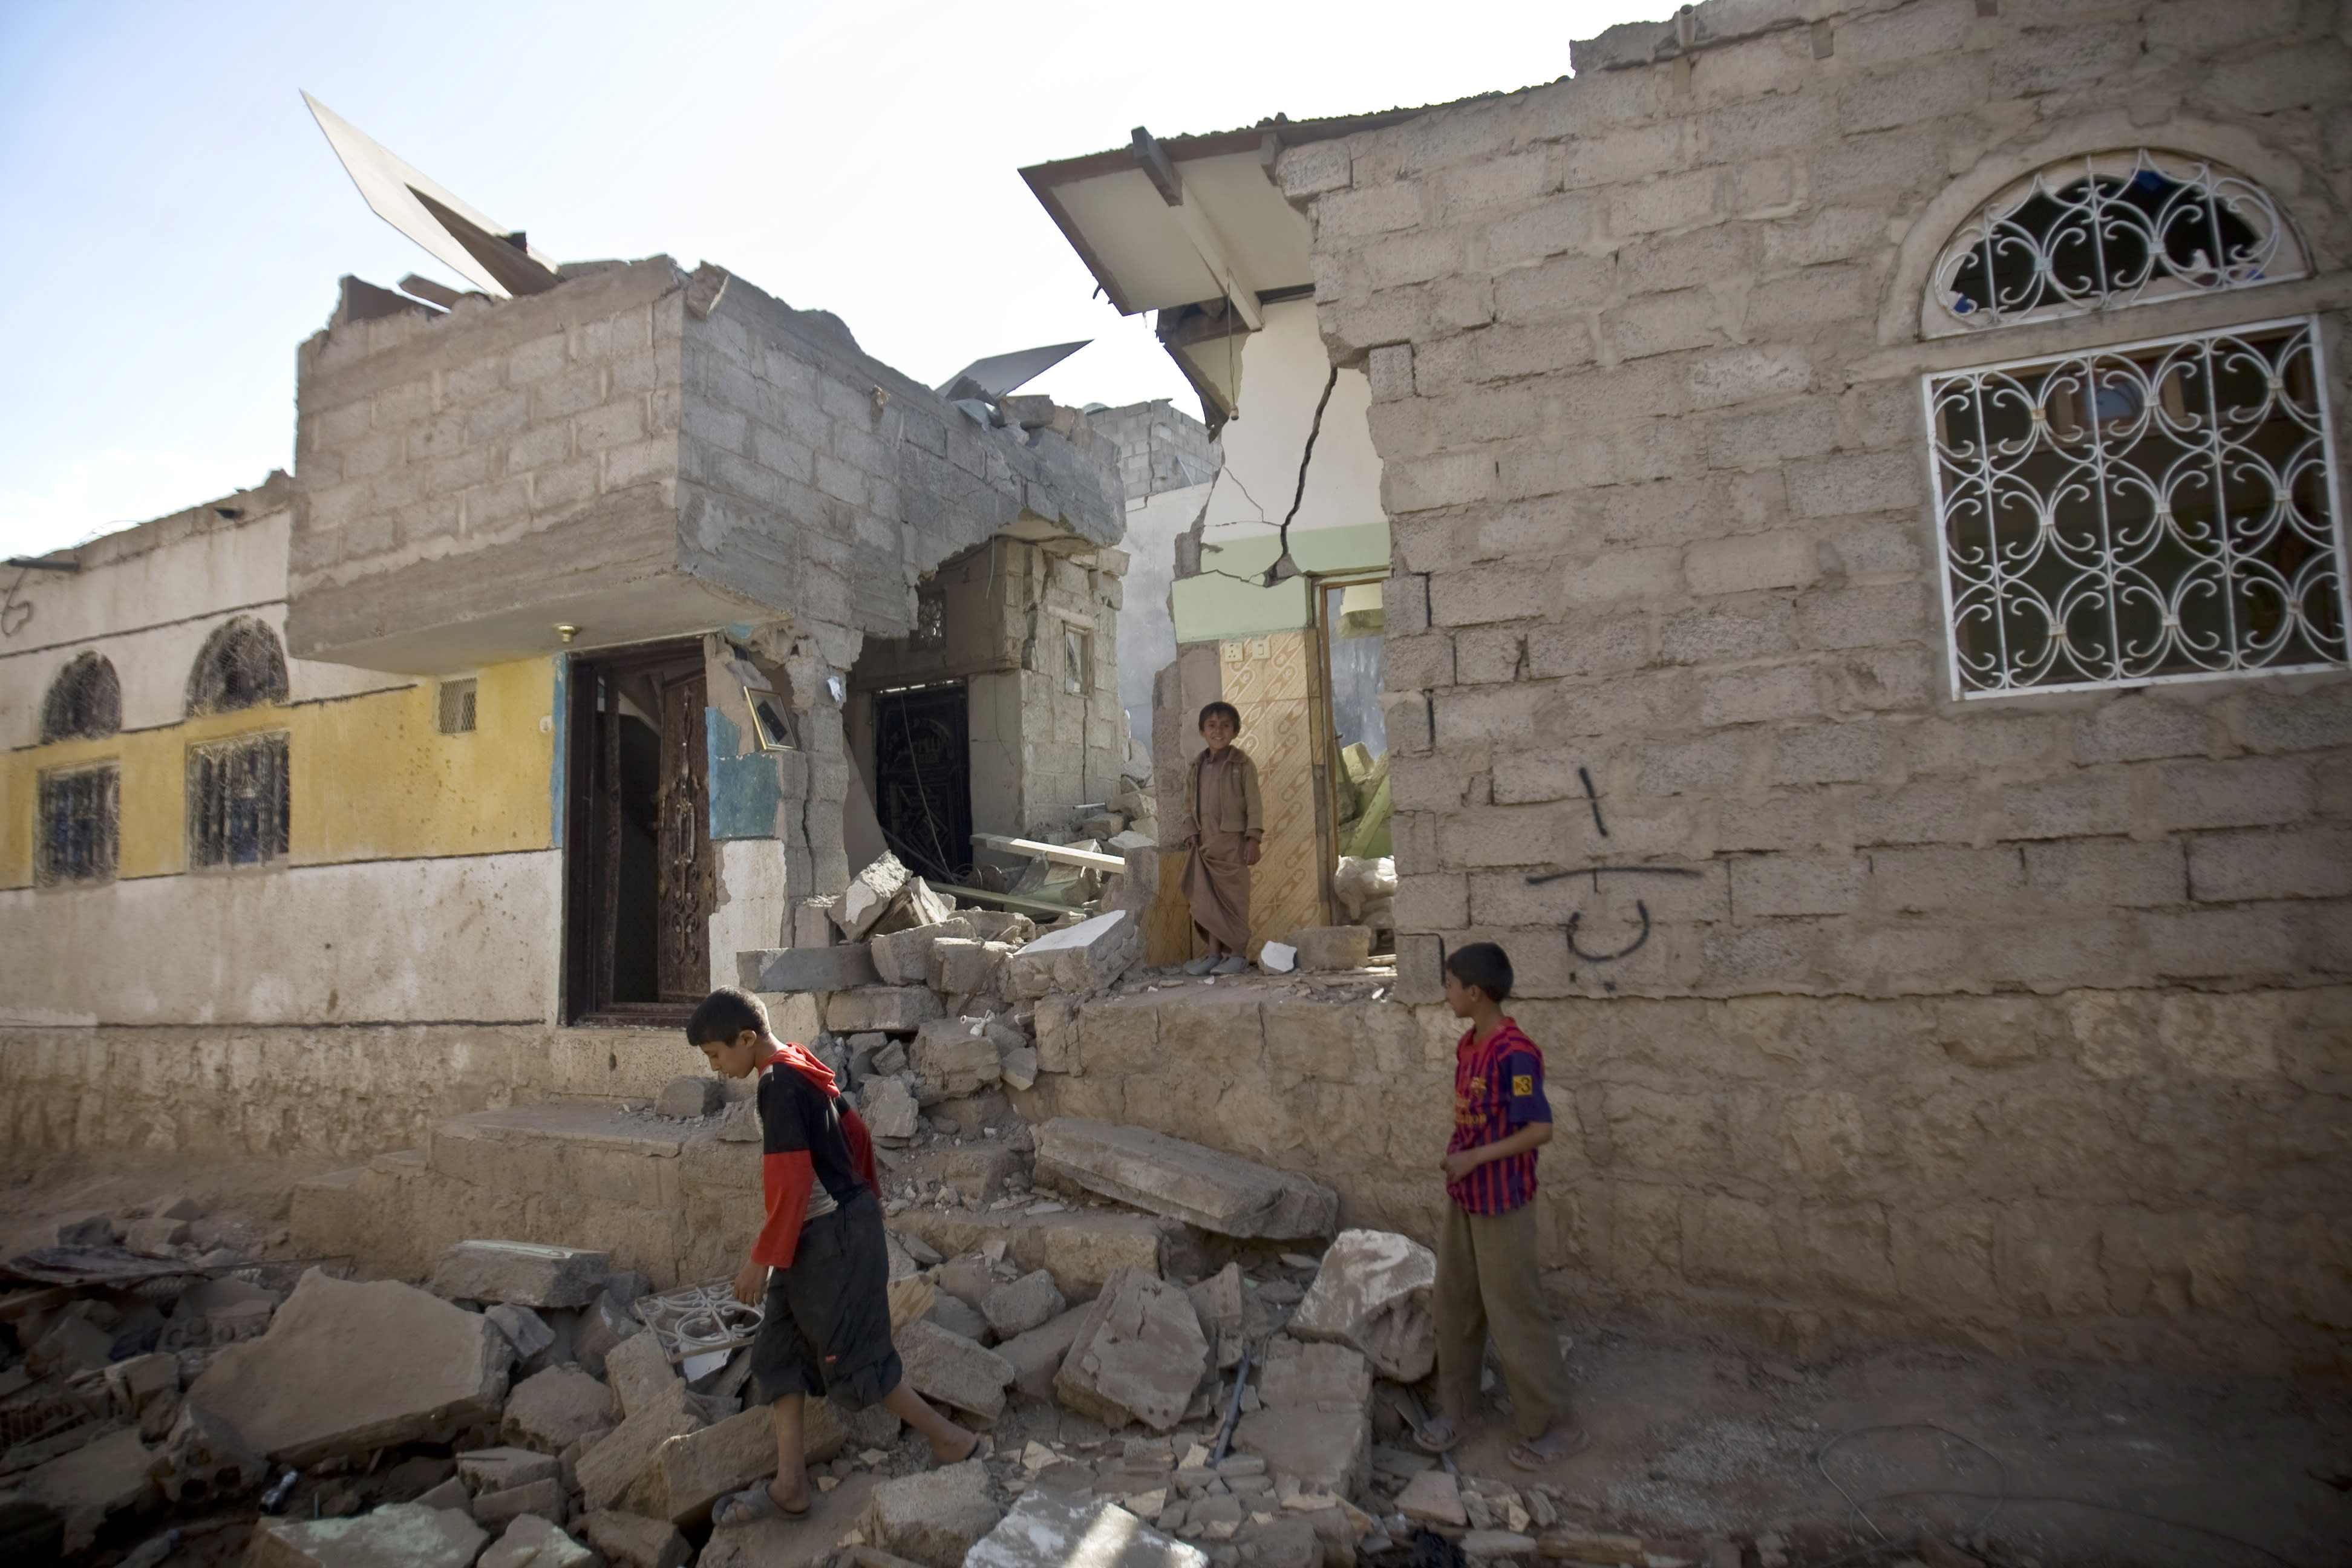 35 dead in Yemen after airstrikes hit factory vicinity